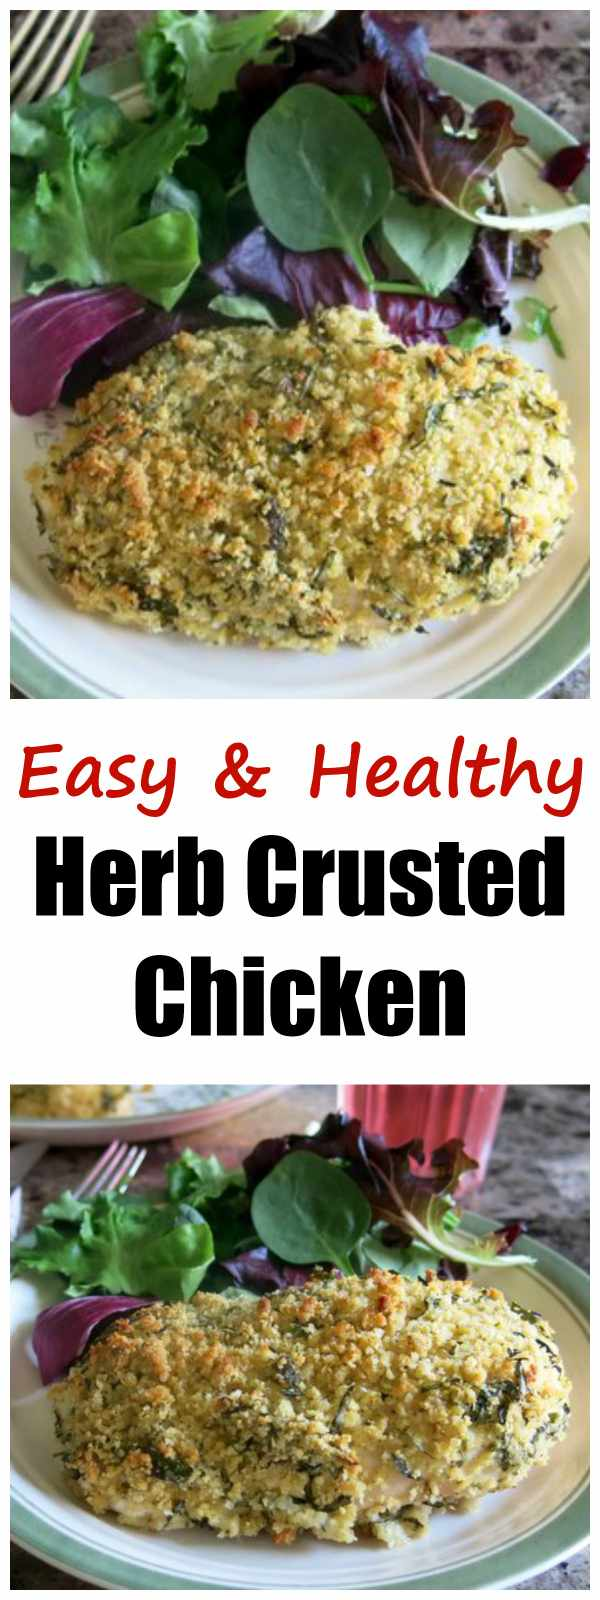 This Herb Crusted Chicken Recipe was a favorite at our make ahead dinner store. We call it easy gourmet because it uses fresh herbs and tastes likes you spent lots of time in the kitchen, but it is so easy to make and bakes in the oven..